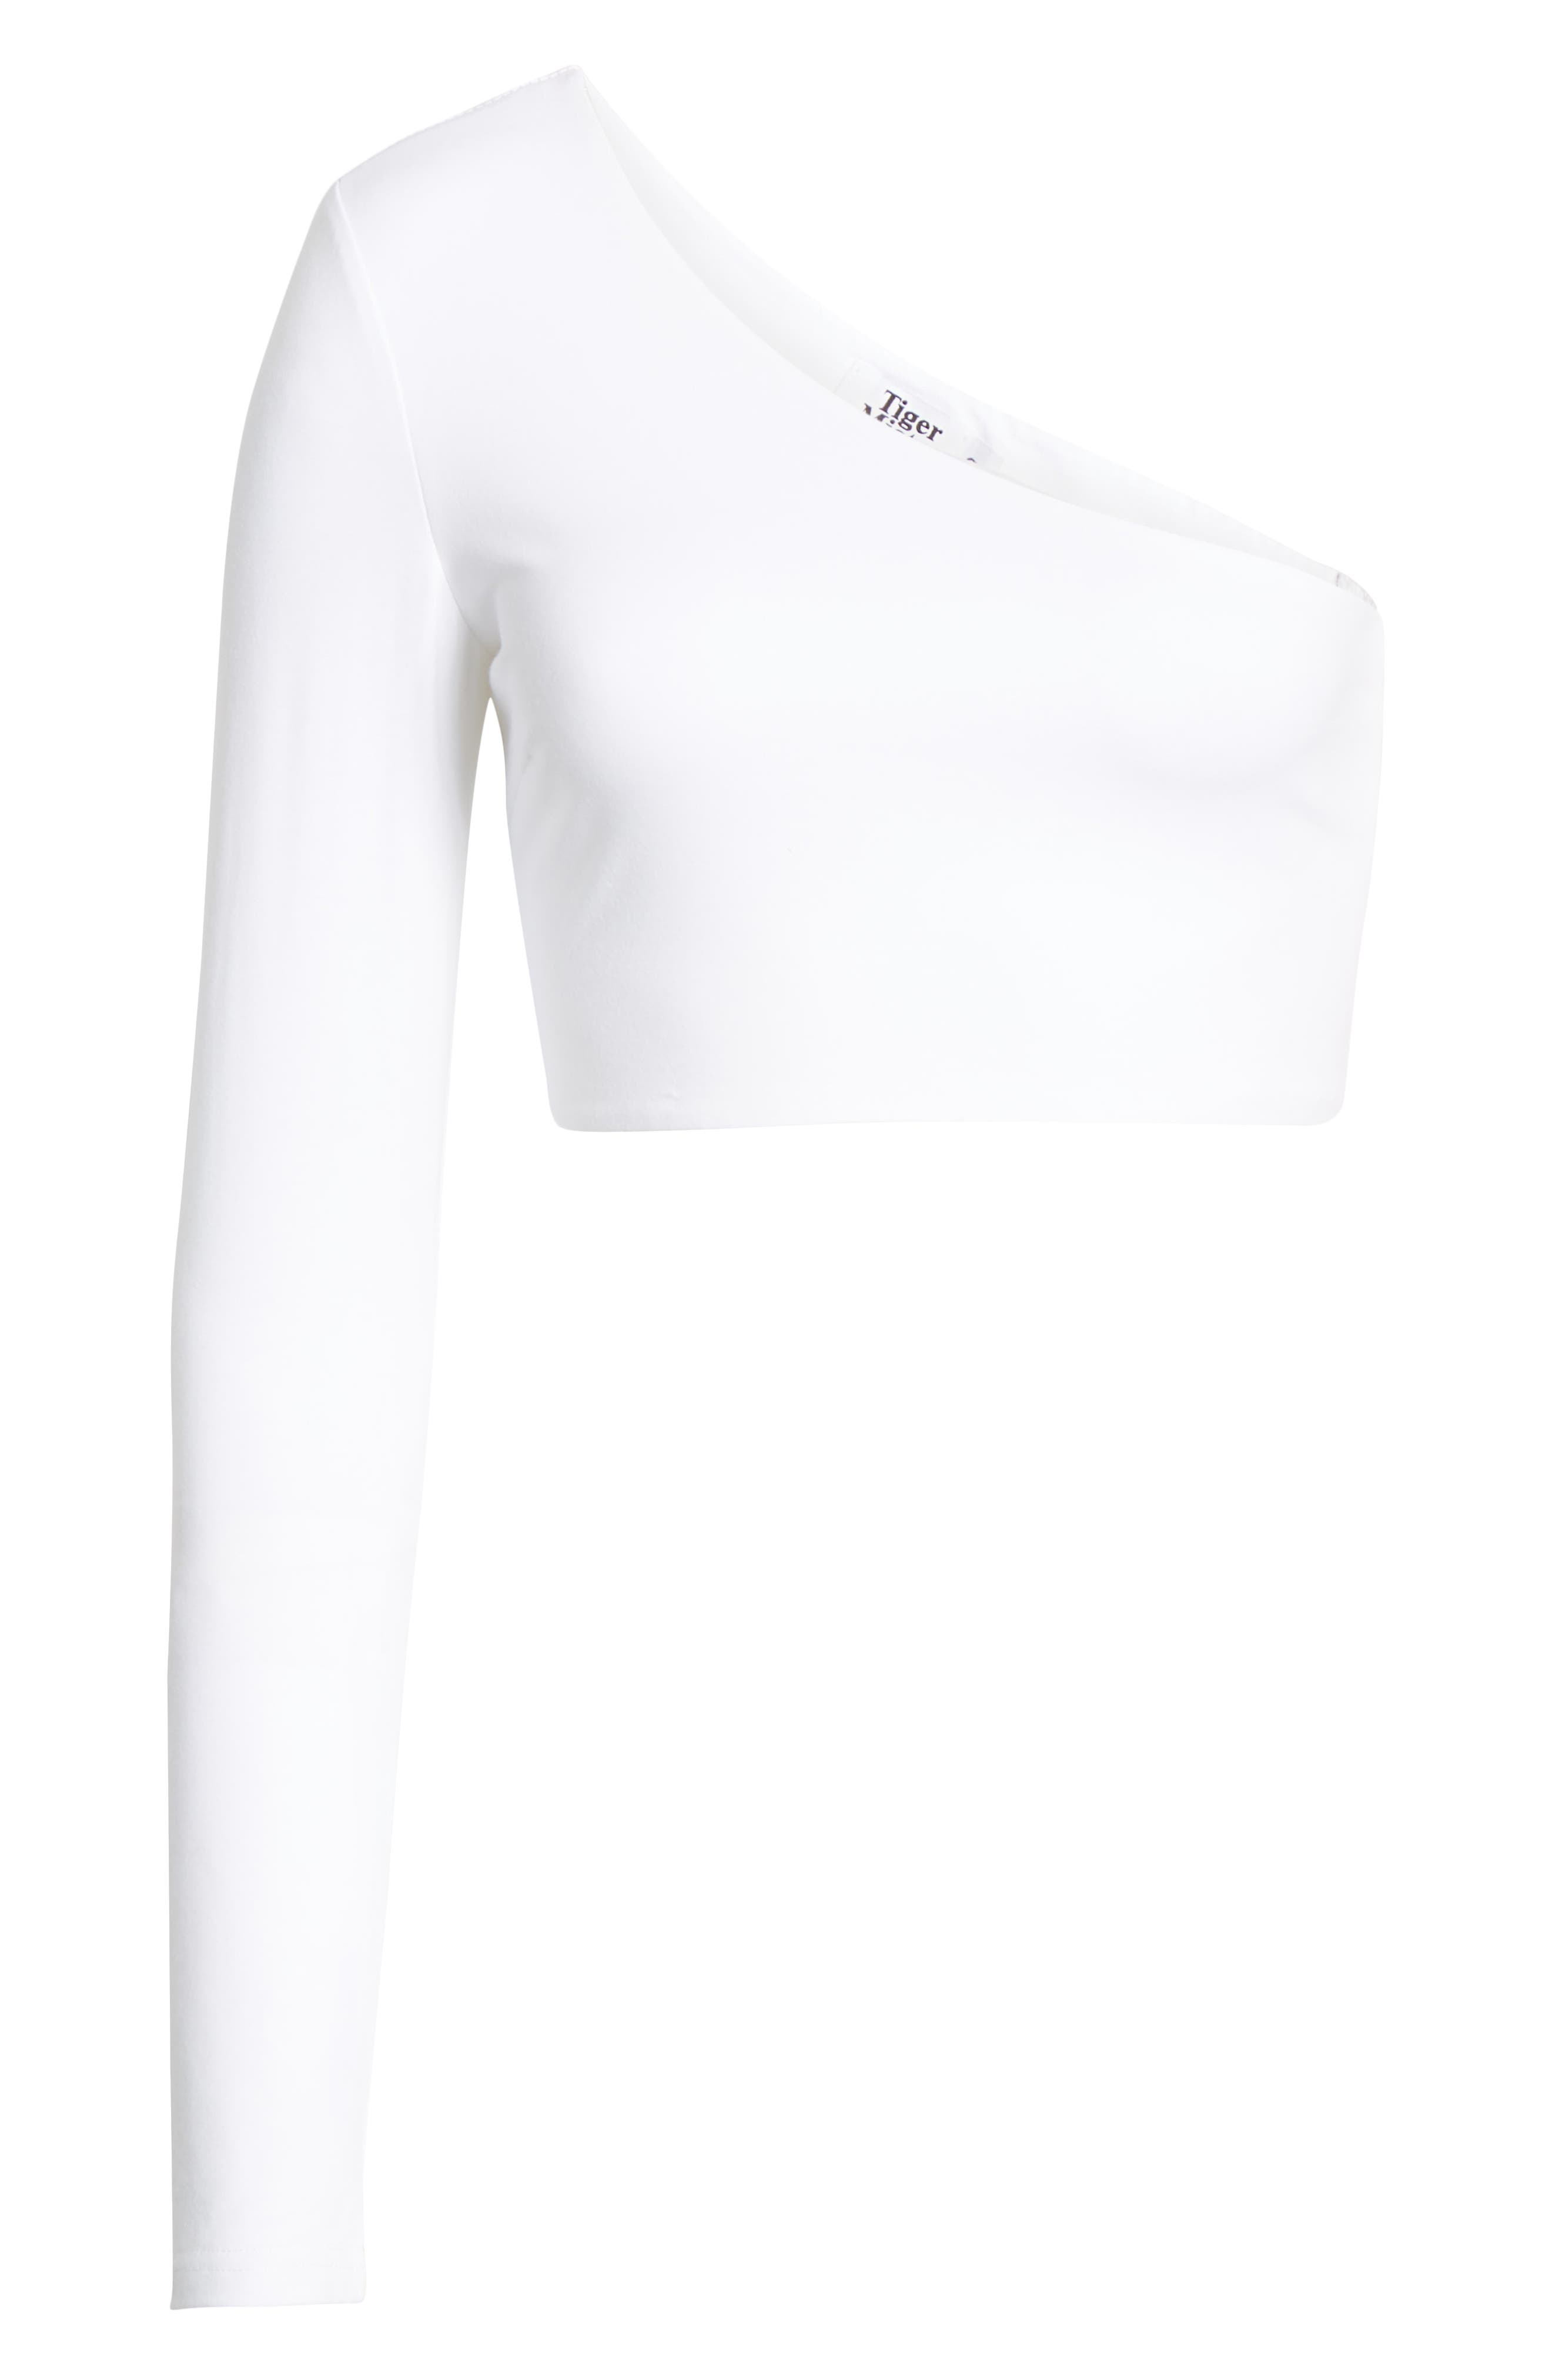 TIGER MIST,  Hatty One-Shoulder One-Sleeve Crop Top, Alternate thumbnail 6, color, 100